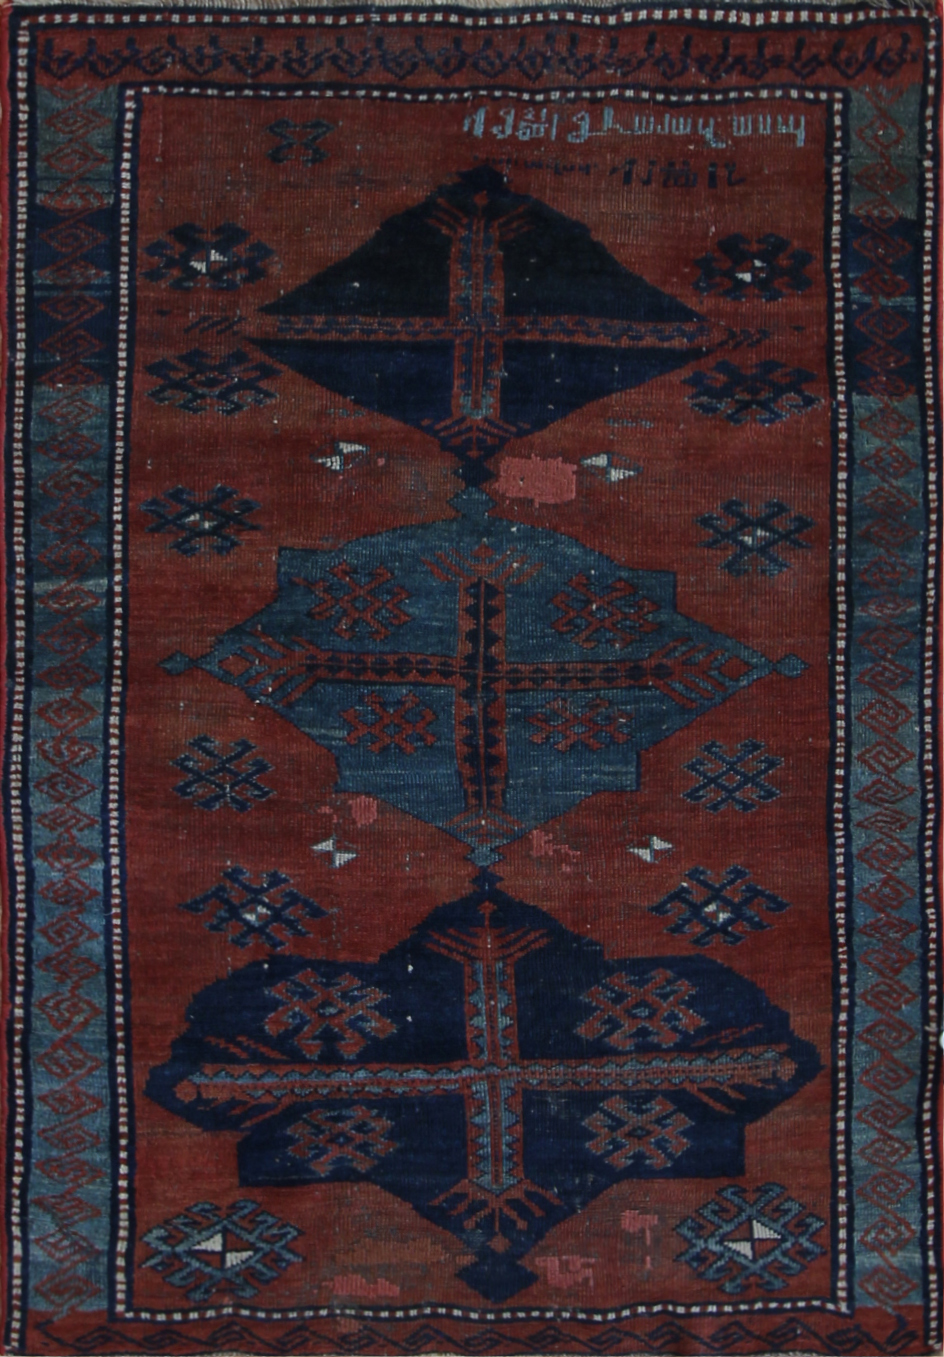 230 Armenian Village Rug, Dated 1919, Inscribed Hamazasp, 4' x 5'9''